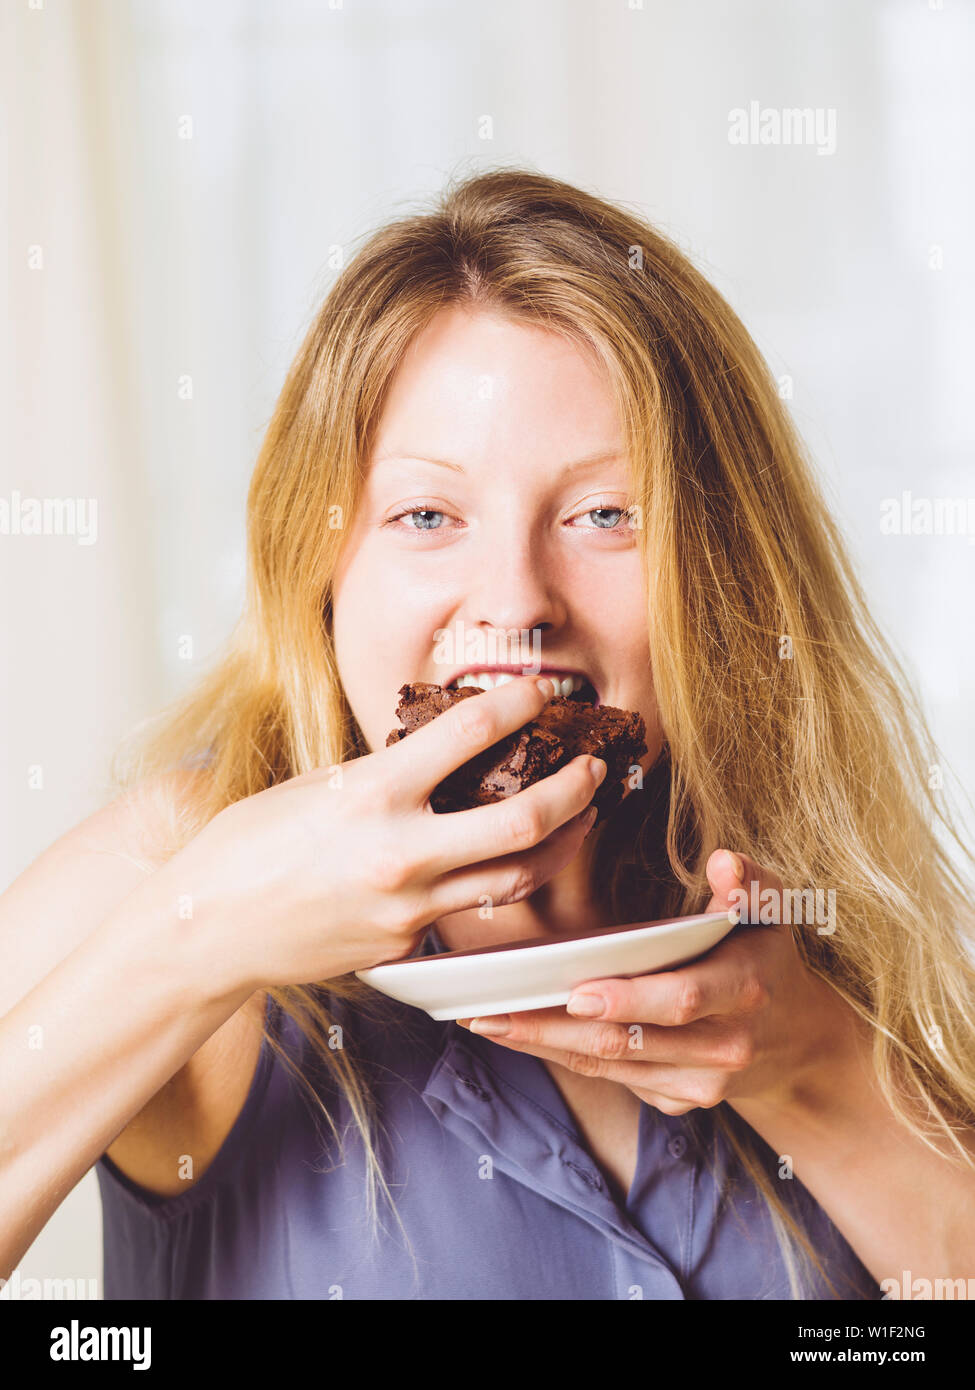 Photo of a beautiful blond woman in her early thirties with log blond hair eating a large piece of brownie or cake. - Stock Image